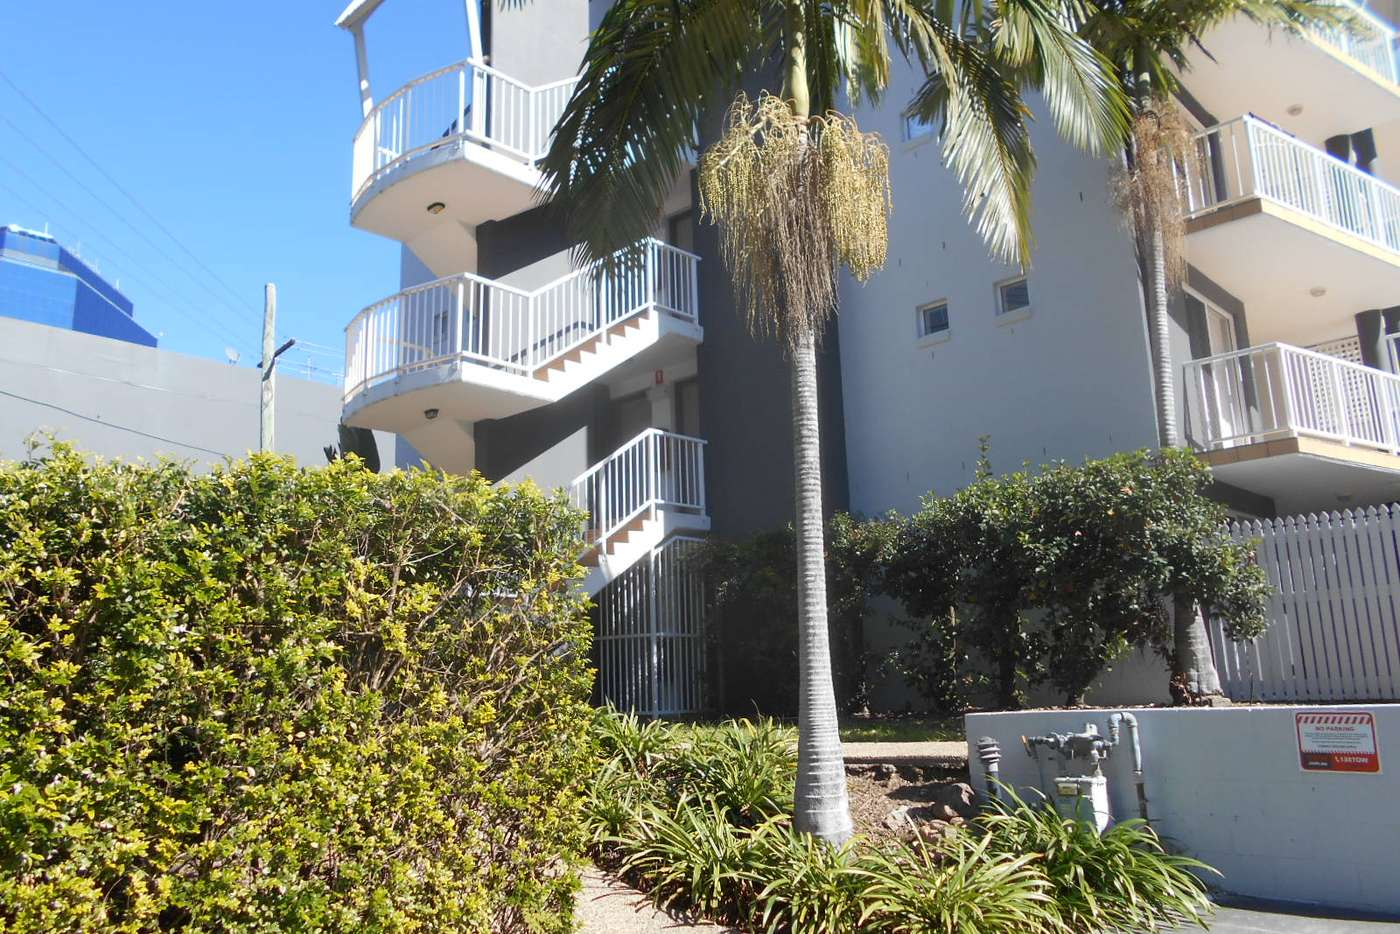 Main view of Homely apartment listing, 38 Lissner Street, Toowong QLD 4066